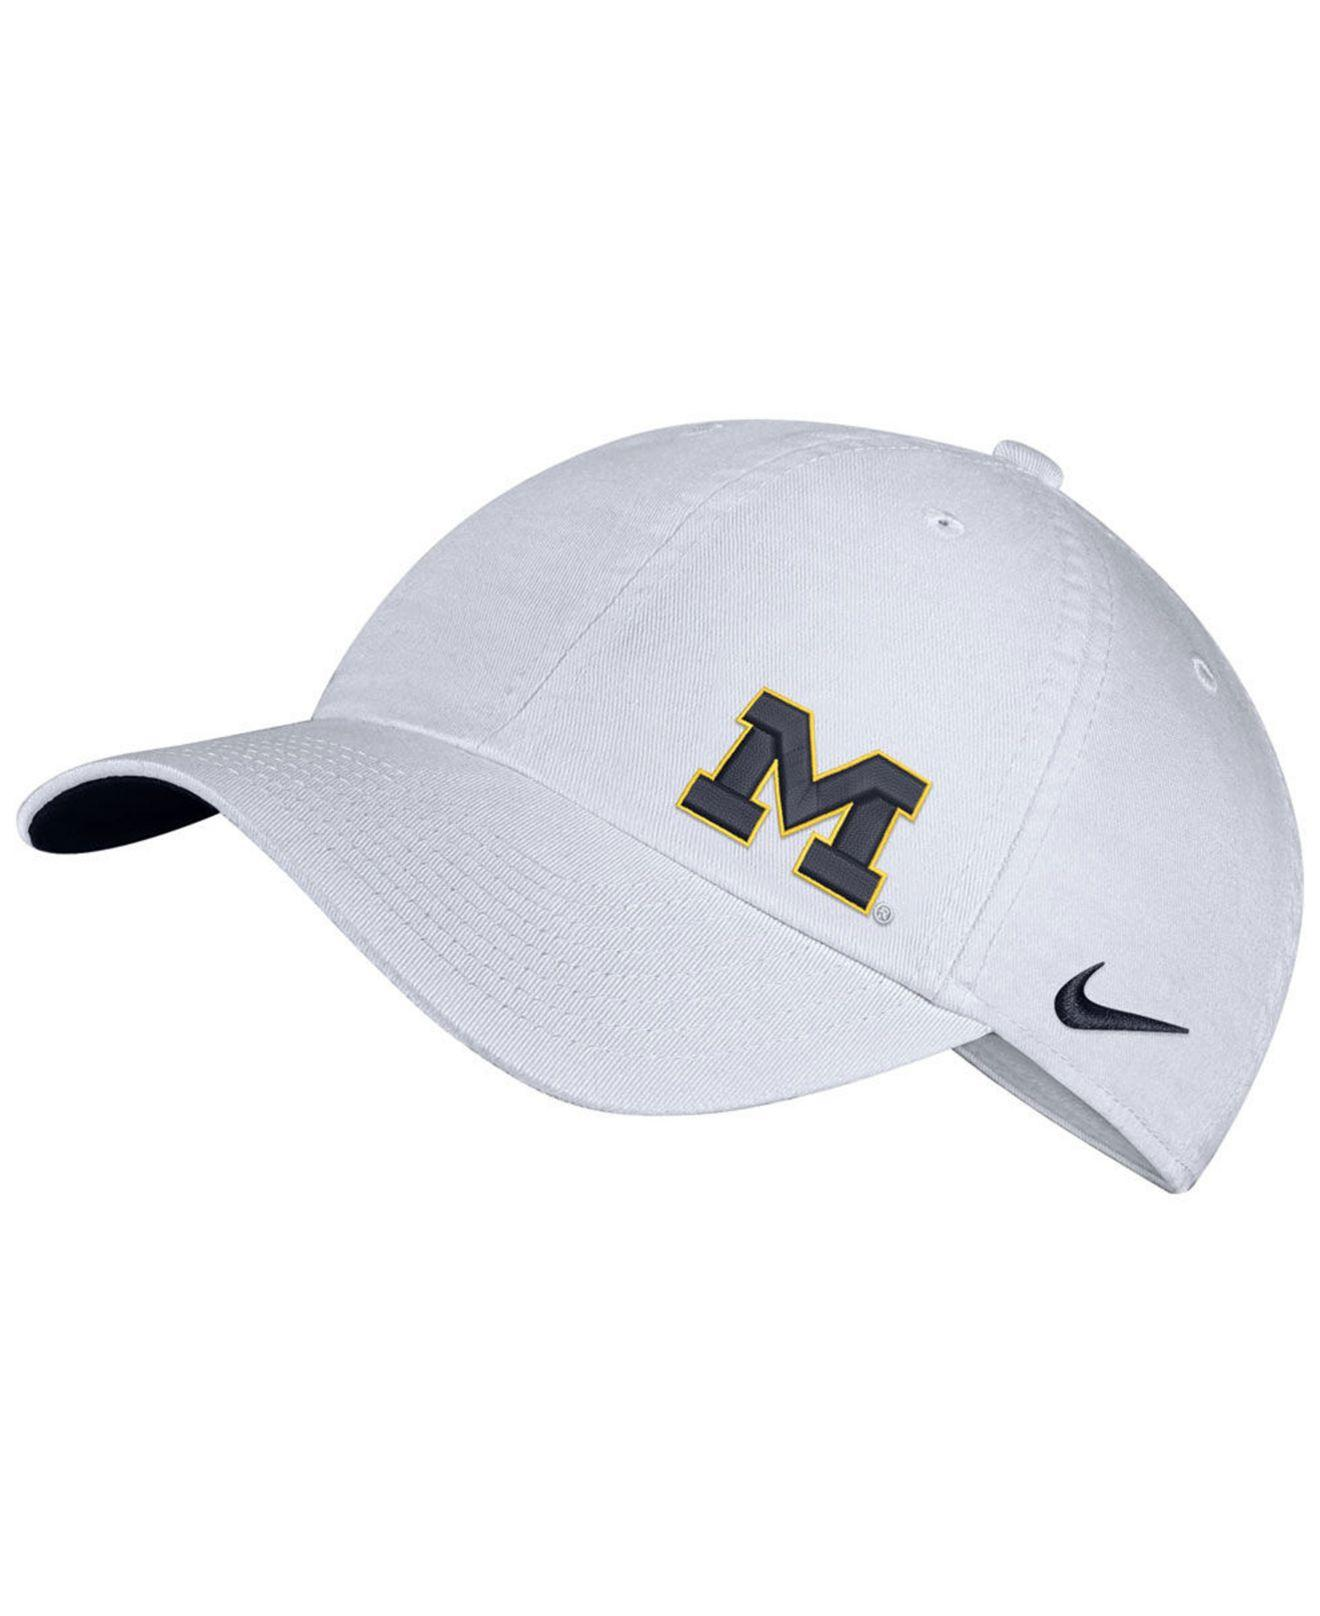 low priced f1caf ed0c6 Lyst - Nike Michigan Wolverines H86 Offset Strapback Cap in White